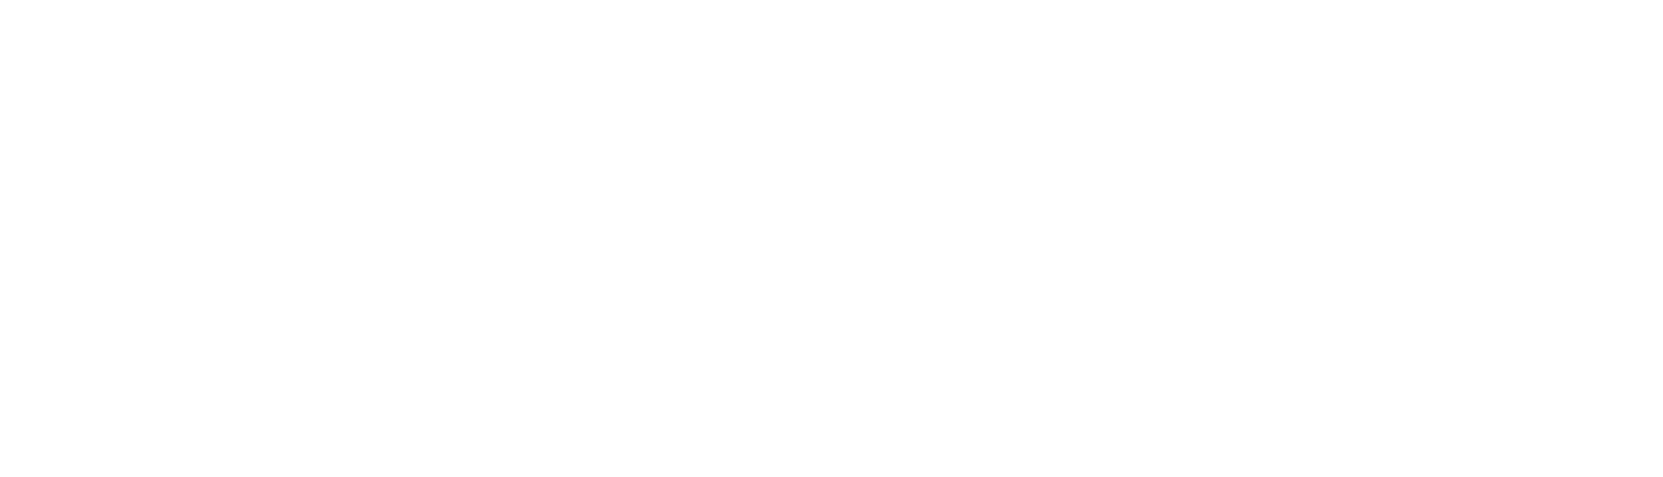 ASSA ABLOY_Global_Solutions_White